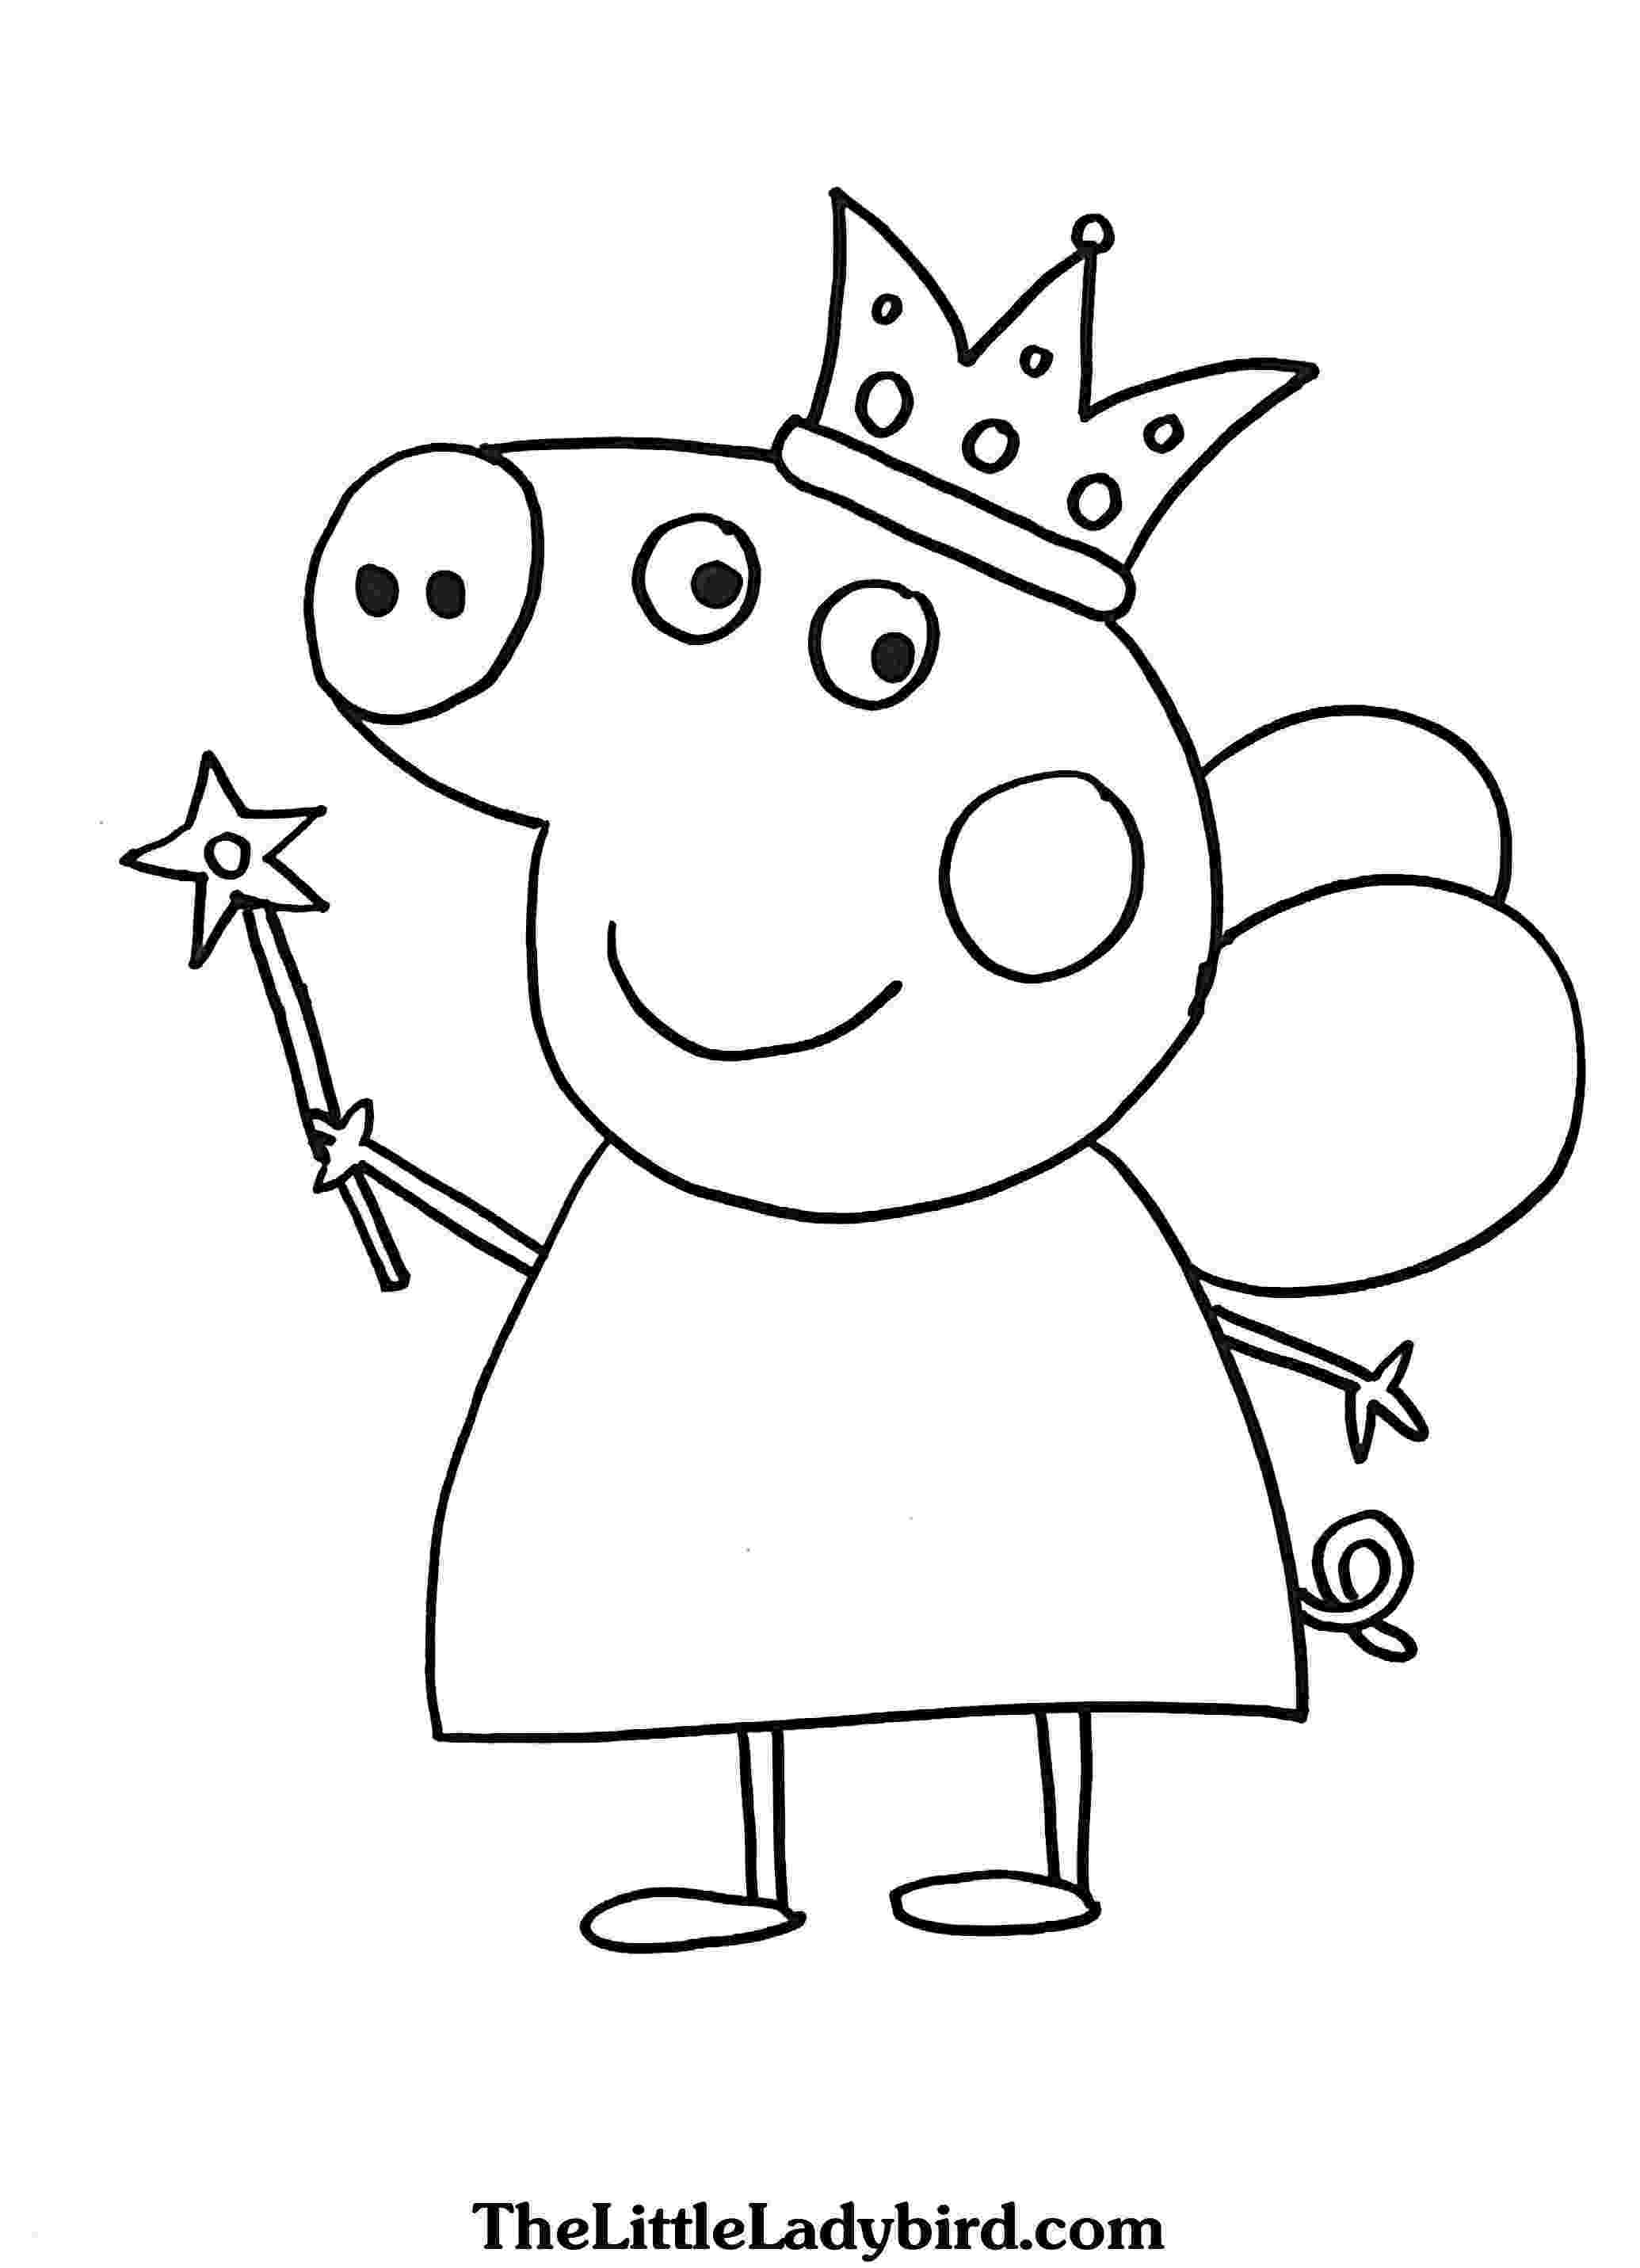 free printables peppa pig one momma saving money april kidtoons feature peppa pig peppa free printables pig